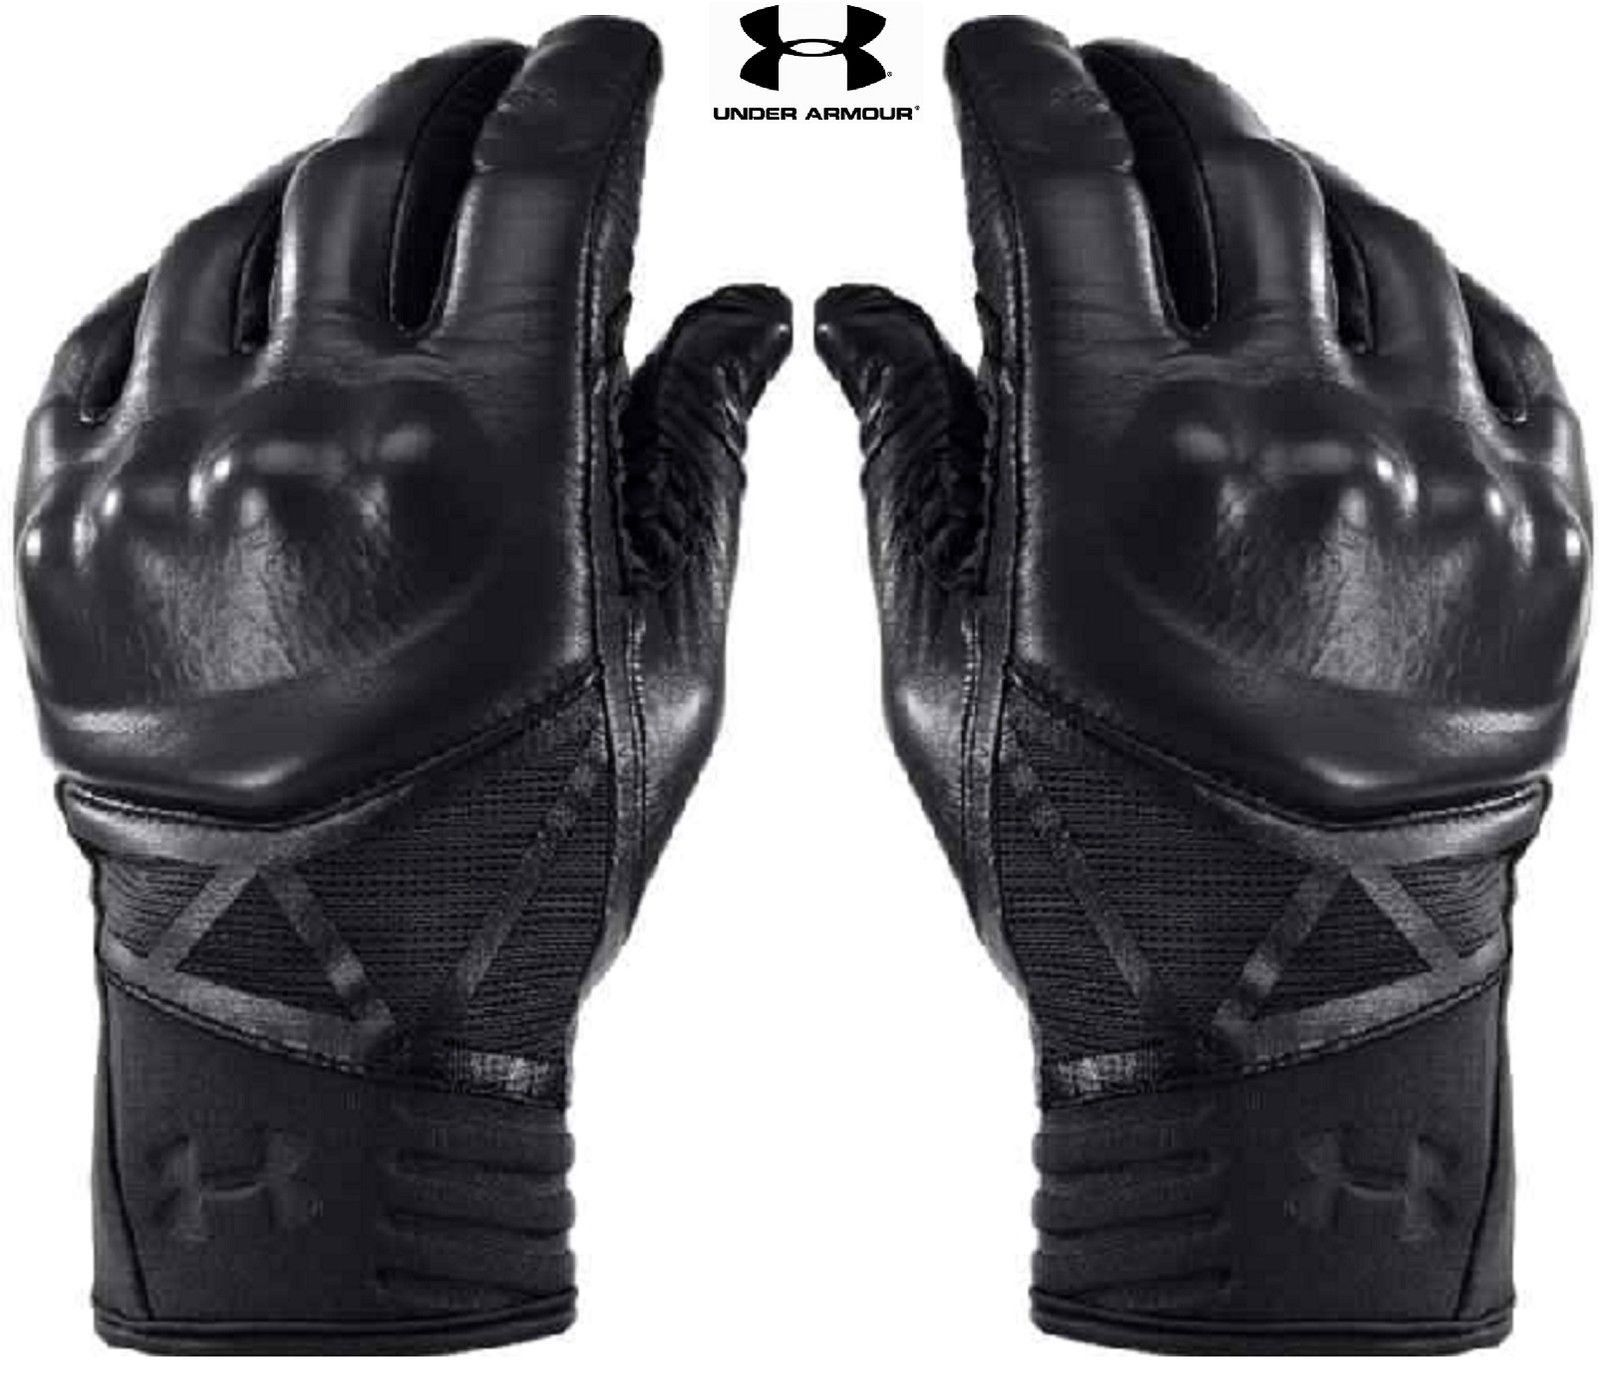 Diavolo leather motorcycle gloves - Black Under Armour Hard Knuckle Tactical Glove Ua Tac Performance Gloves